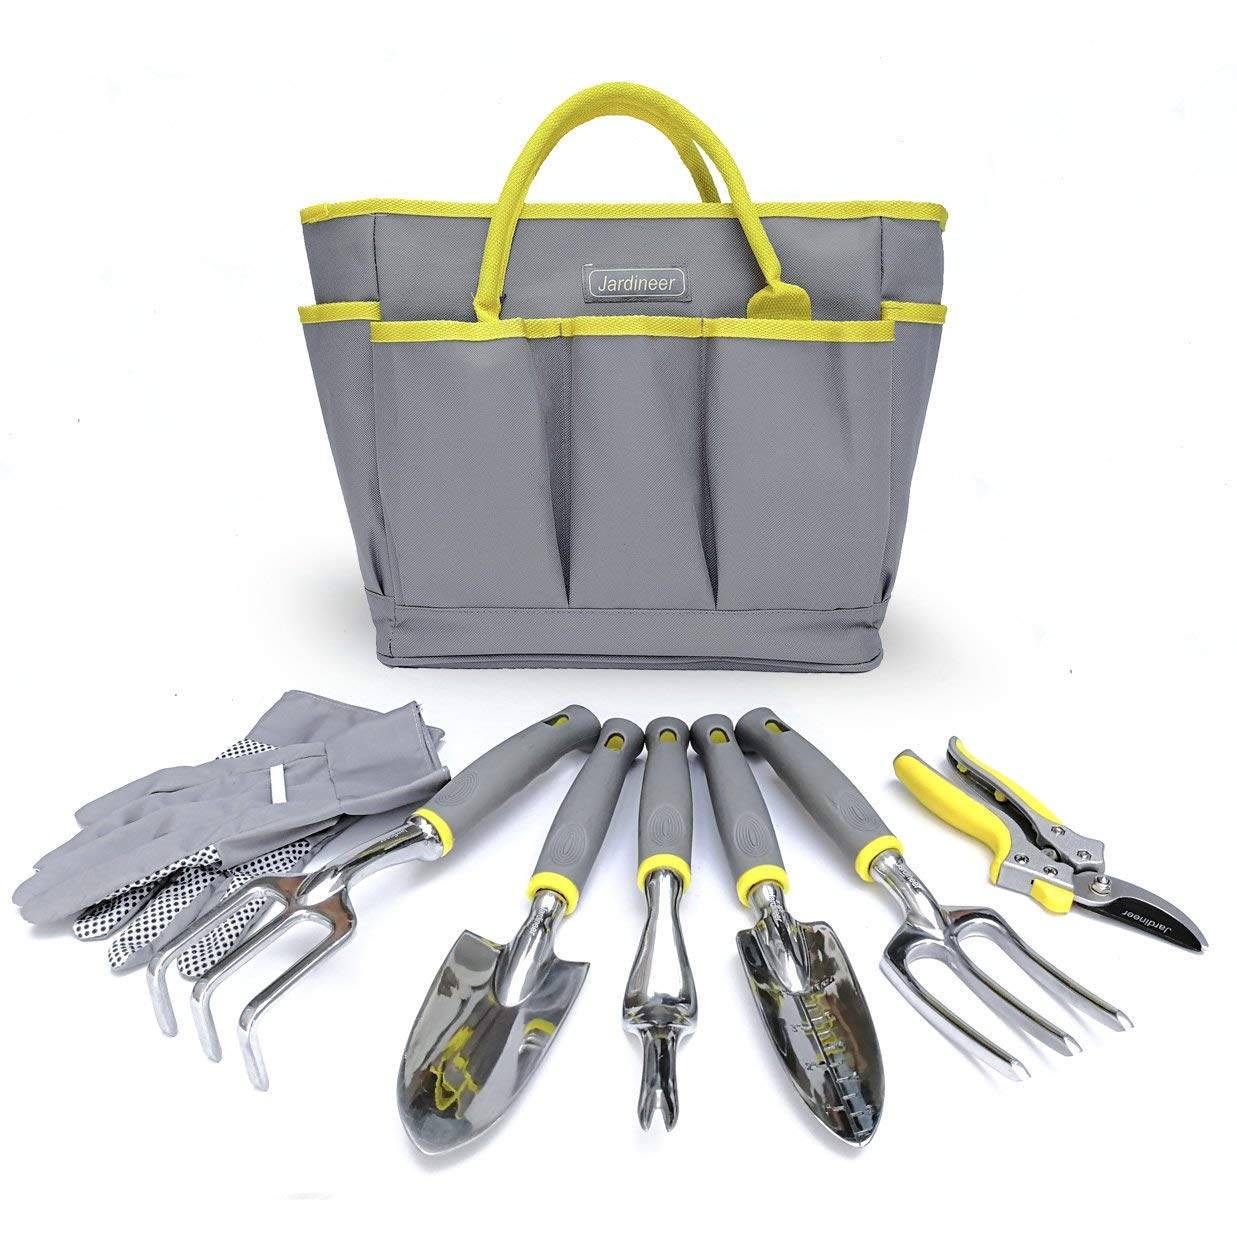 Top 10 Best Garden Tool Sets In 2018 Review